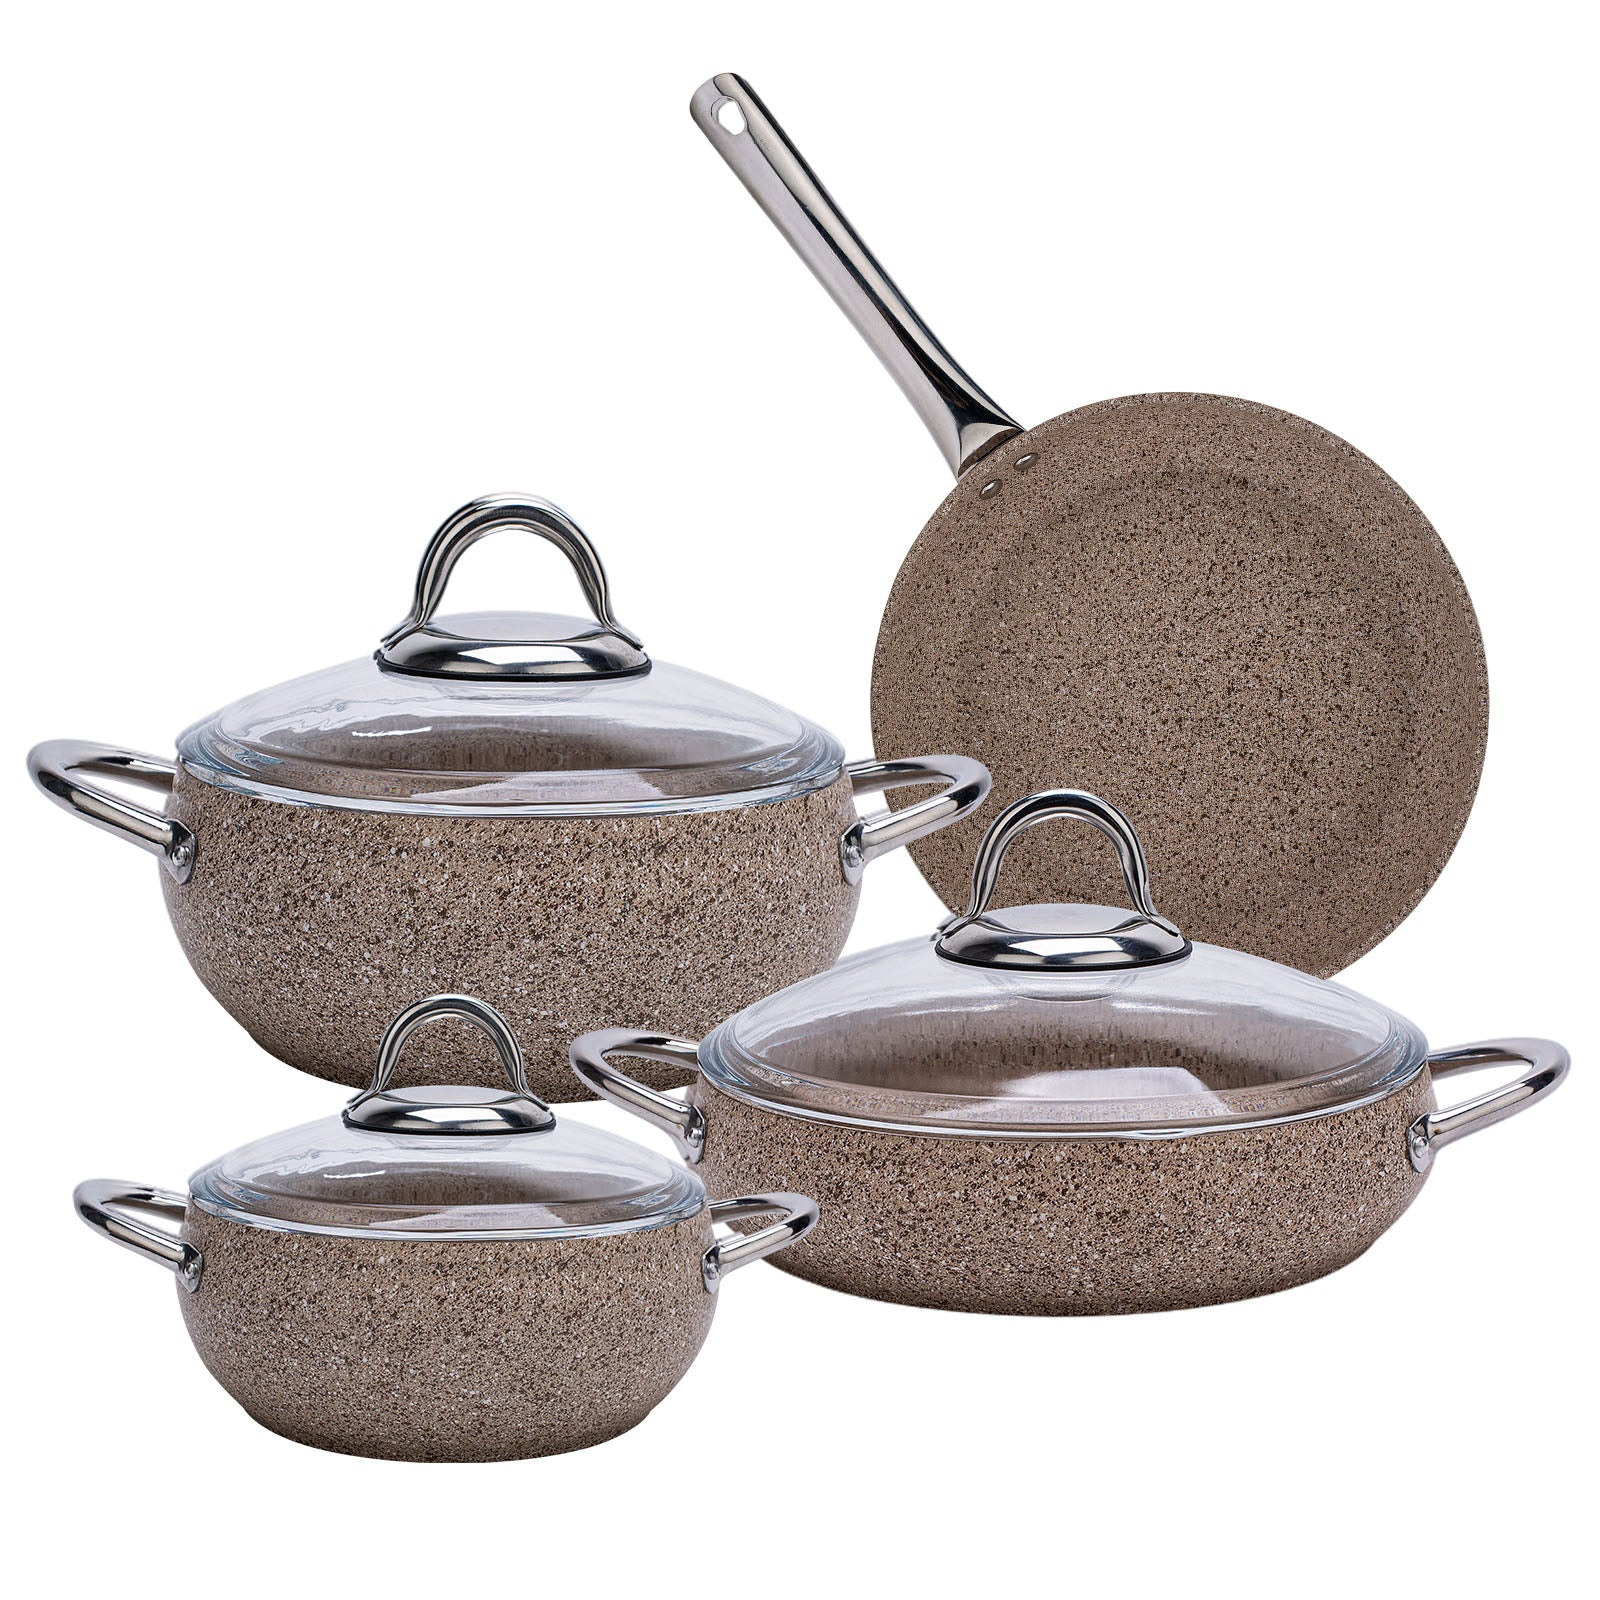 Avanos Terra Bio Granit 7 Piece Cookware Set Set 153.03.07.8952 -  طقم أواني الطهي 7 قطع - Shop Online Furniture and Home Decor Store in Dubai, UAE at ebarza